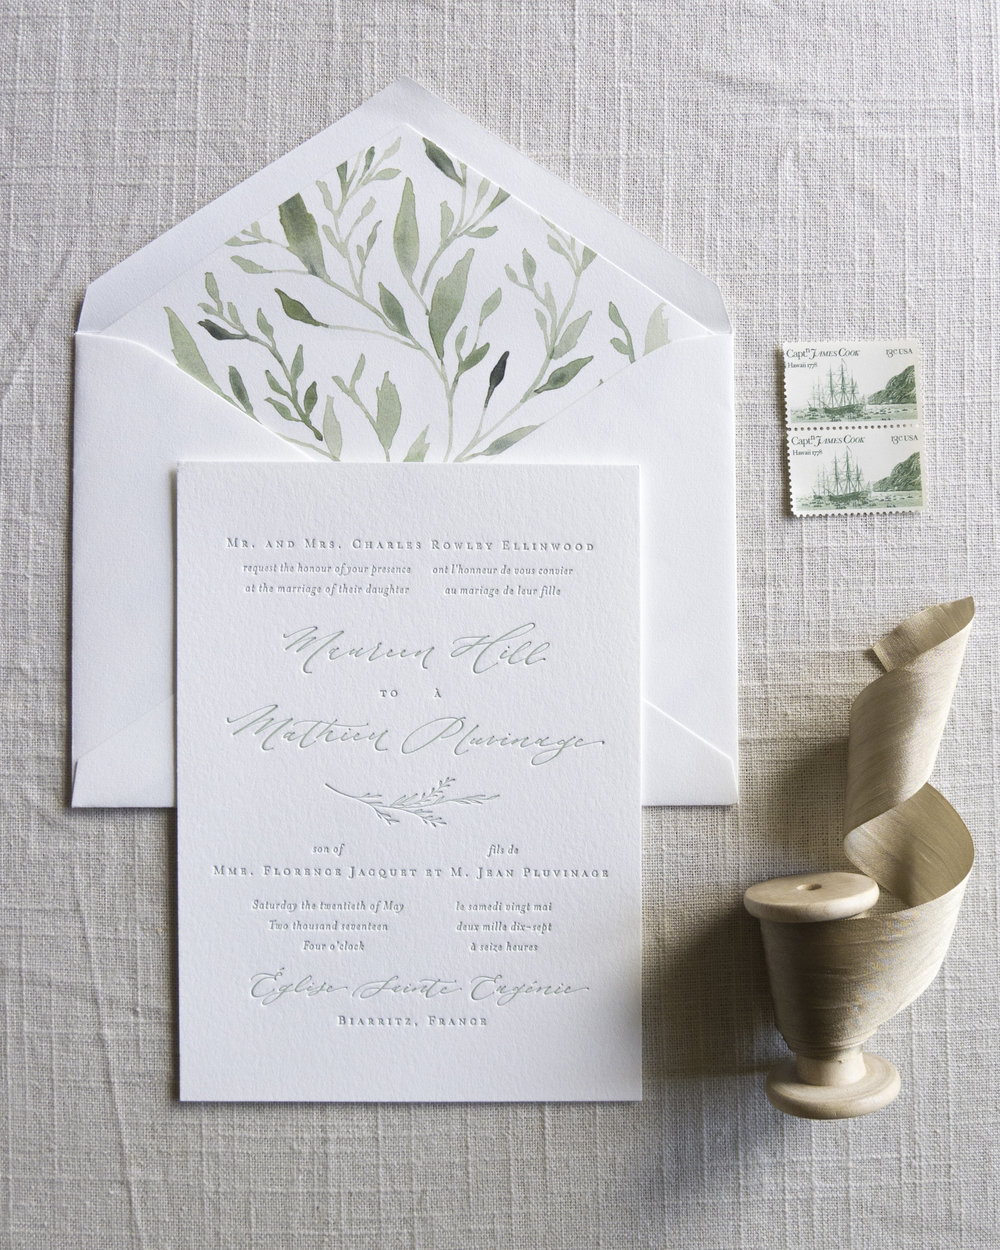 Linen & Leaf Greenery Envelope Liner Letterpress Suite